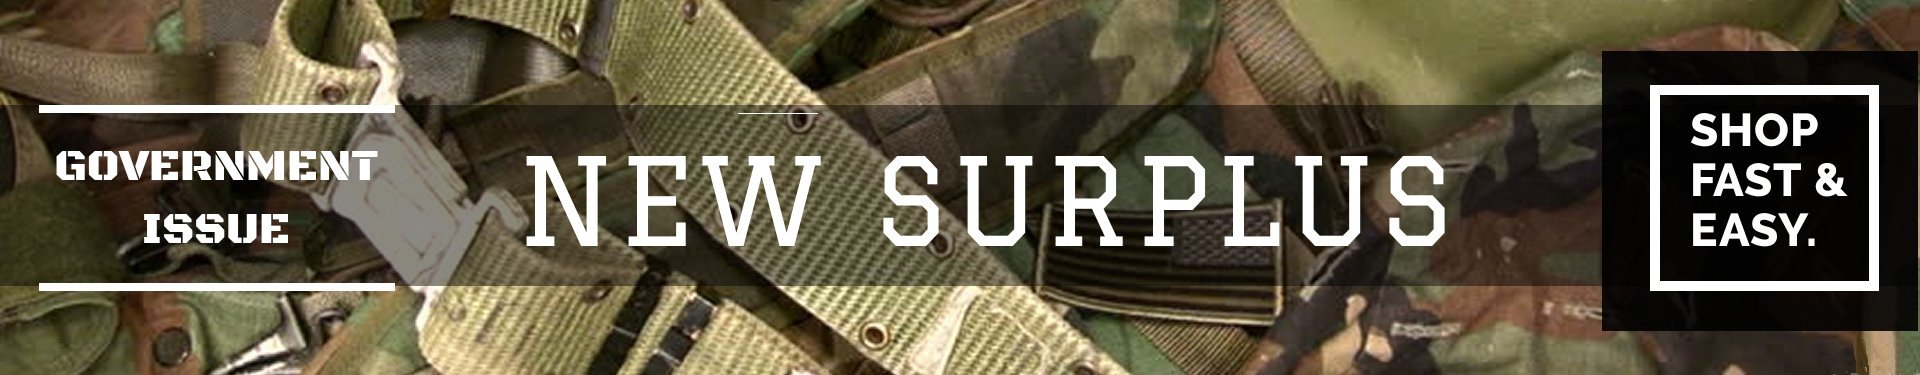 army navy outdoors survival military tactical gear and clothing